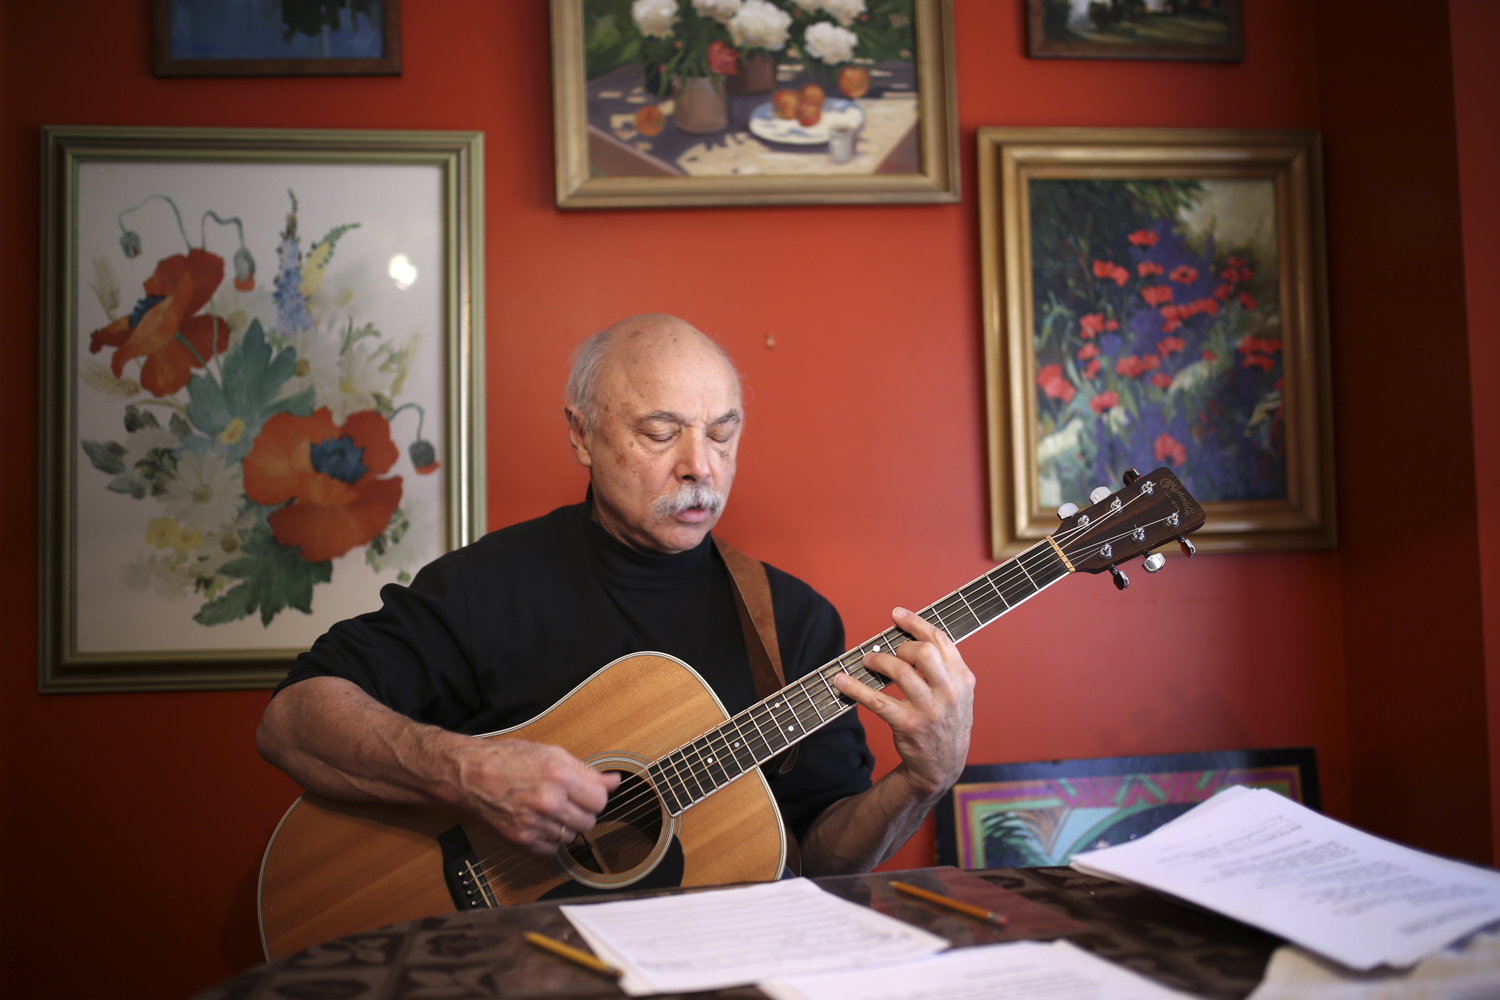 Dad Yates warms up on the guitar and reviews notes before facilitating a music lesson at his home on Feb. 2, 2017, in Salem, Va. [Photograph by Scott P. Yates]